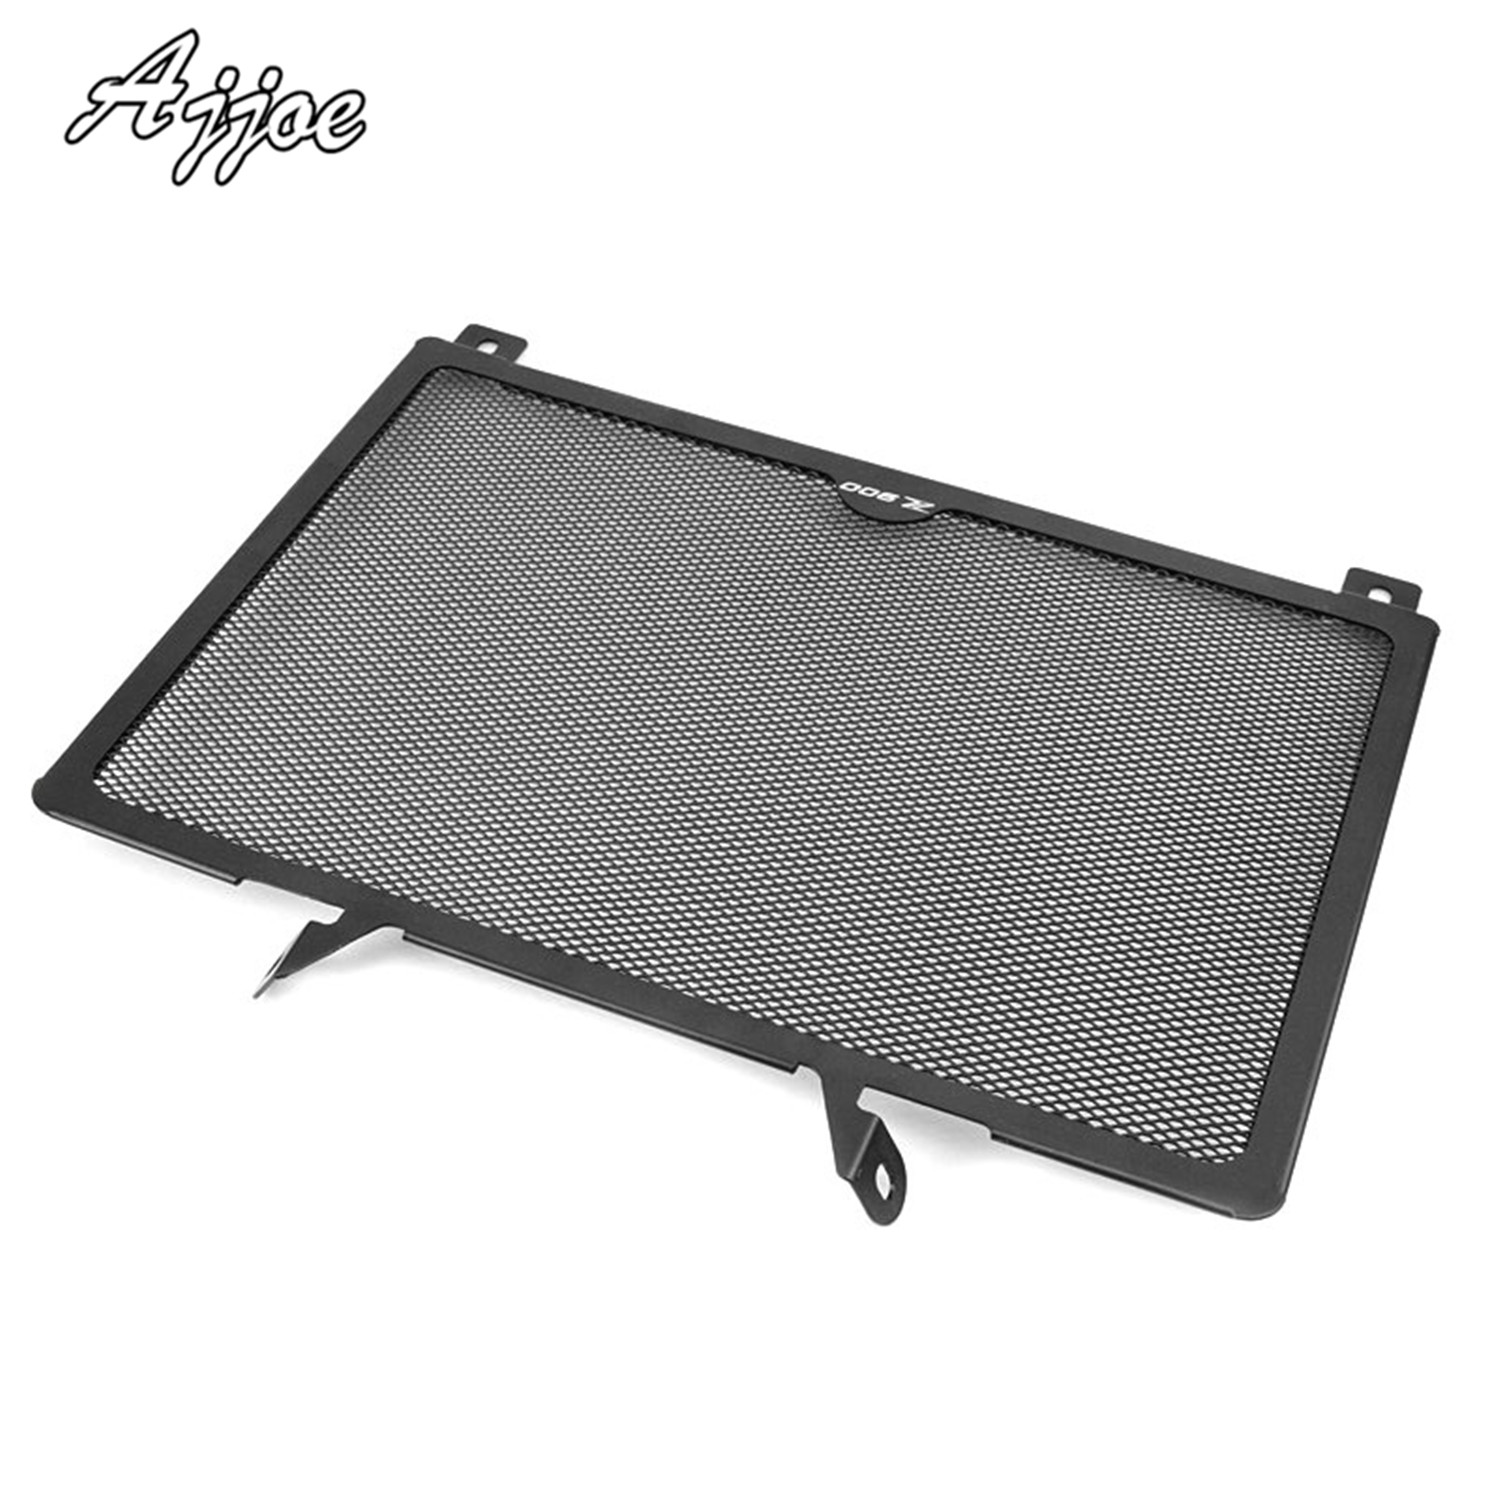 Motorcycle Radiator Grille Guard Protector Cover For Kawasaki Z900 2017 2018 Z900RS 2018Motorcycle Radiator Grille Guard Protector Cover For Kawasaki Z900 2017 2018 Z900RS 2018